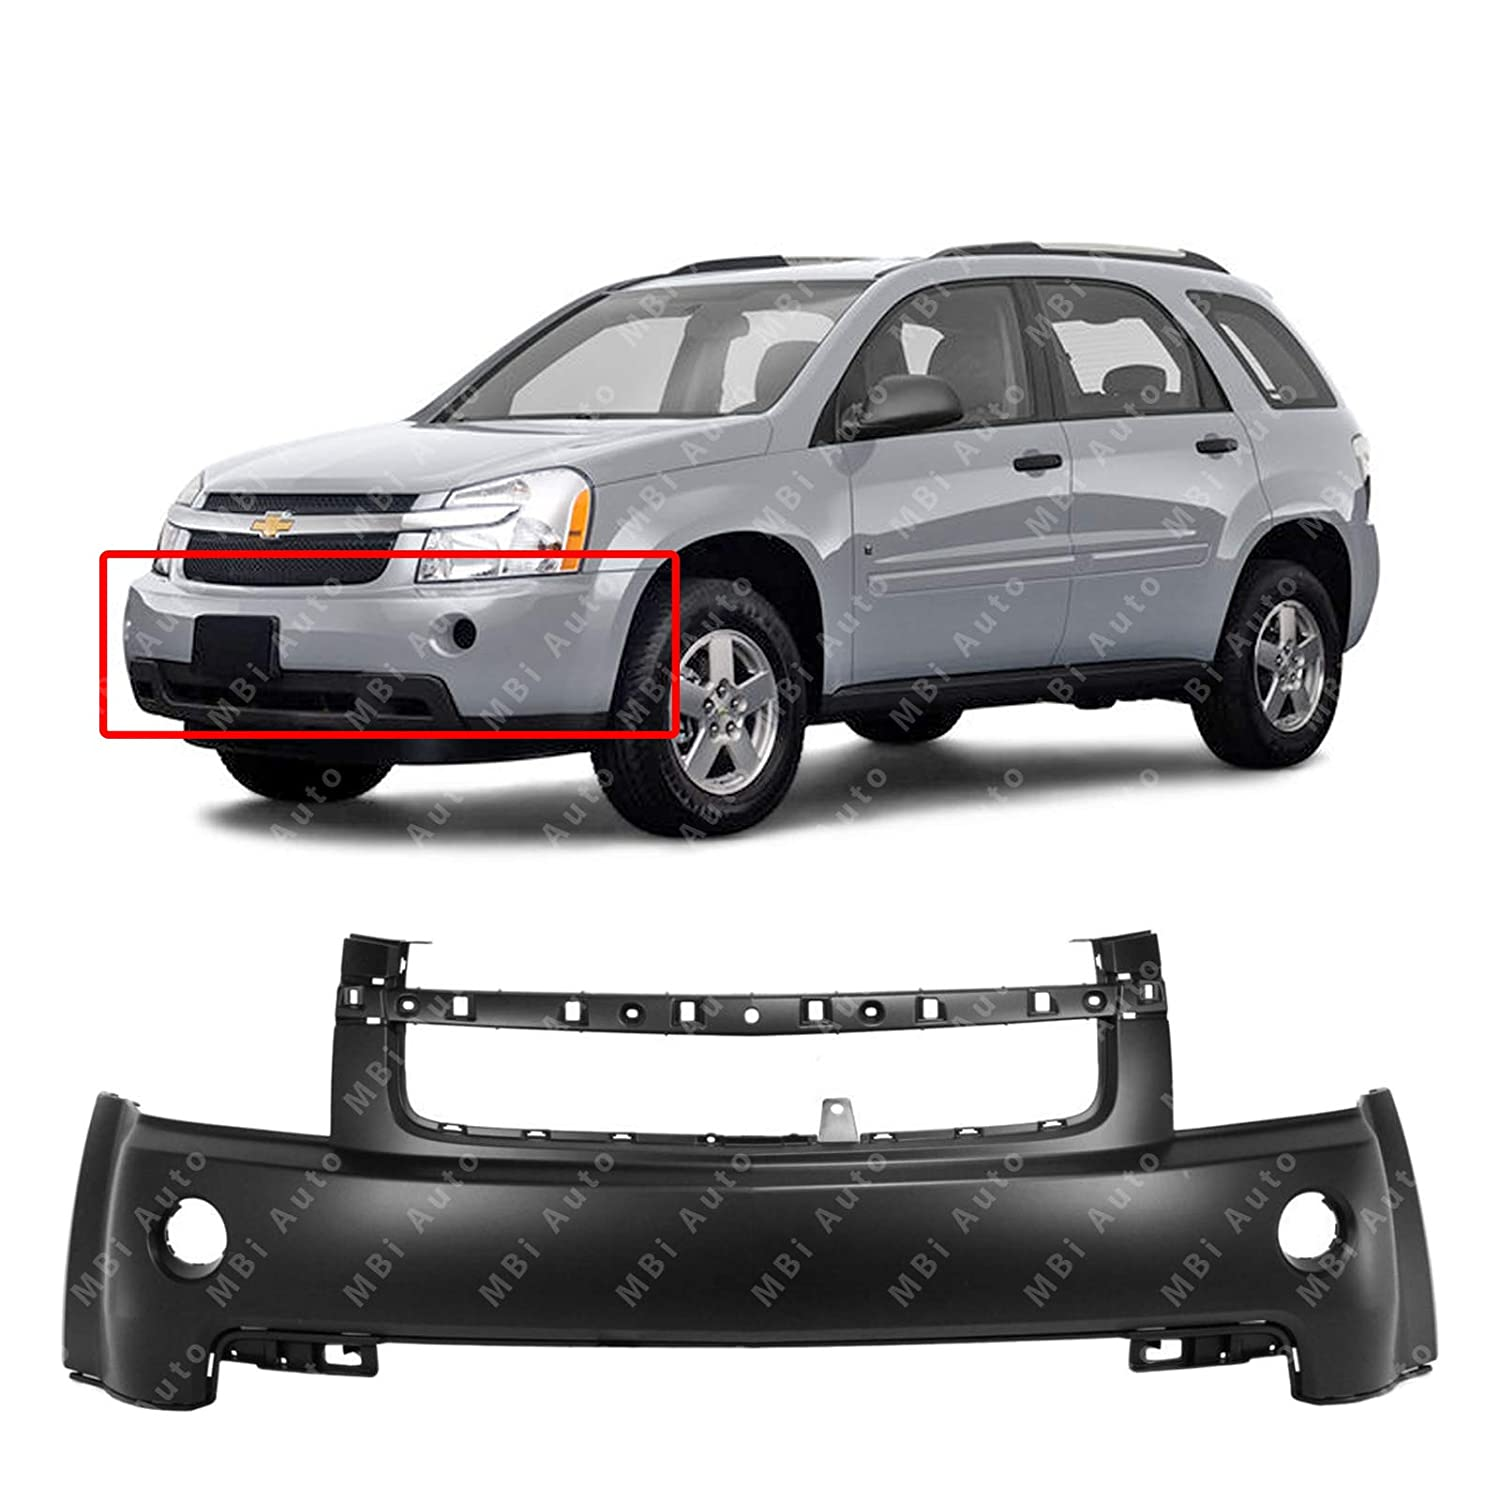 GM1000840 Front Bumper Cover Fascia for 2007 2008 2009 Chevy Equinox 07 08 09 MBI AUTO Primered